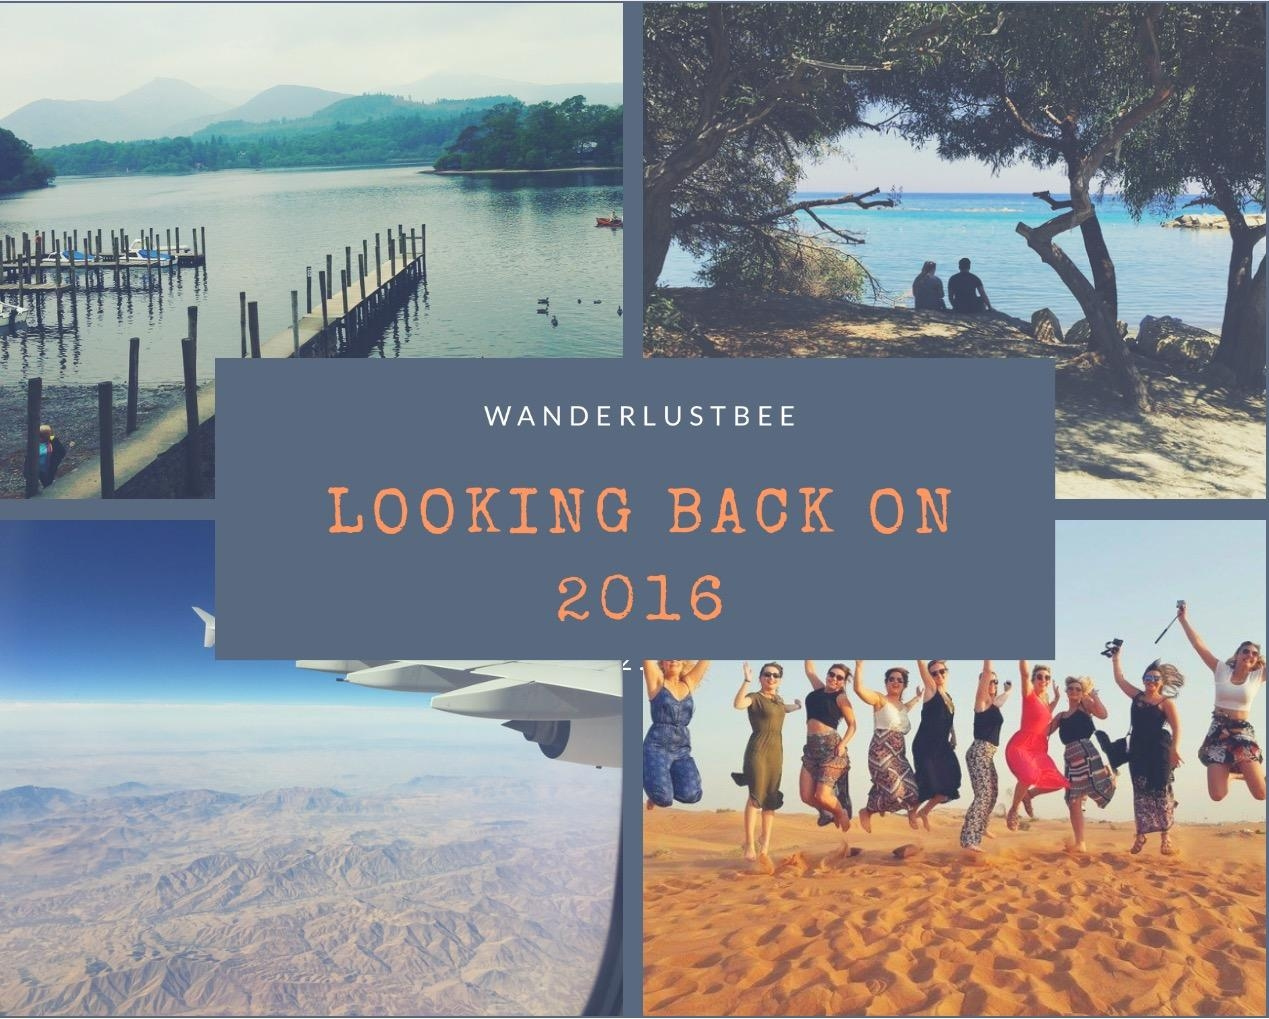 WanderlustBee | Looking Back on 2016